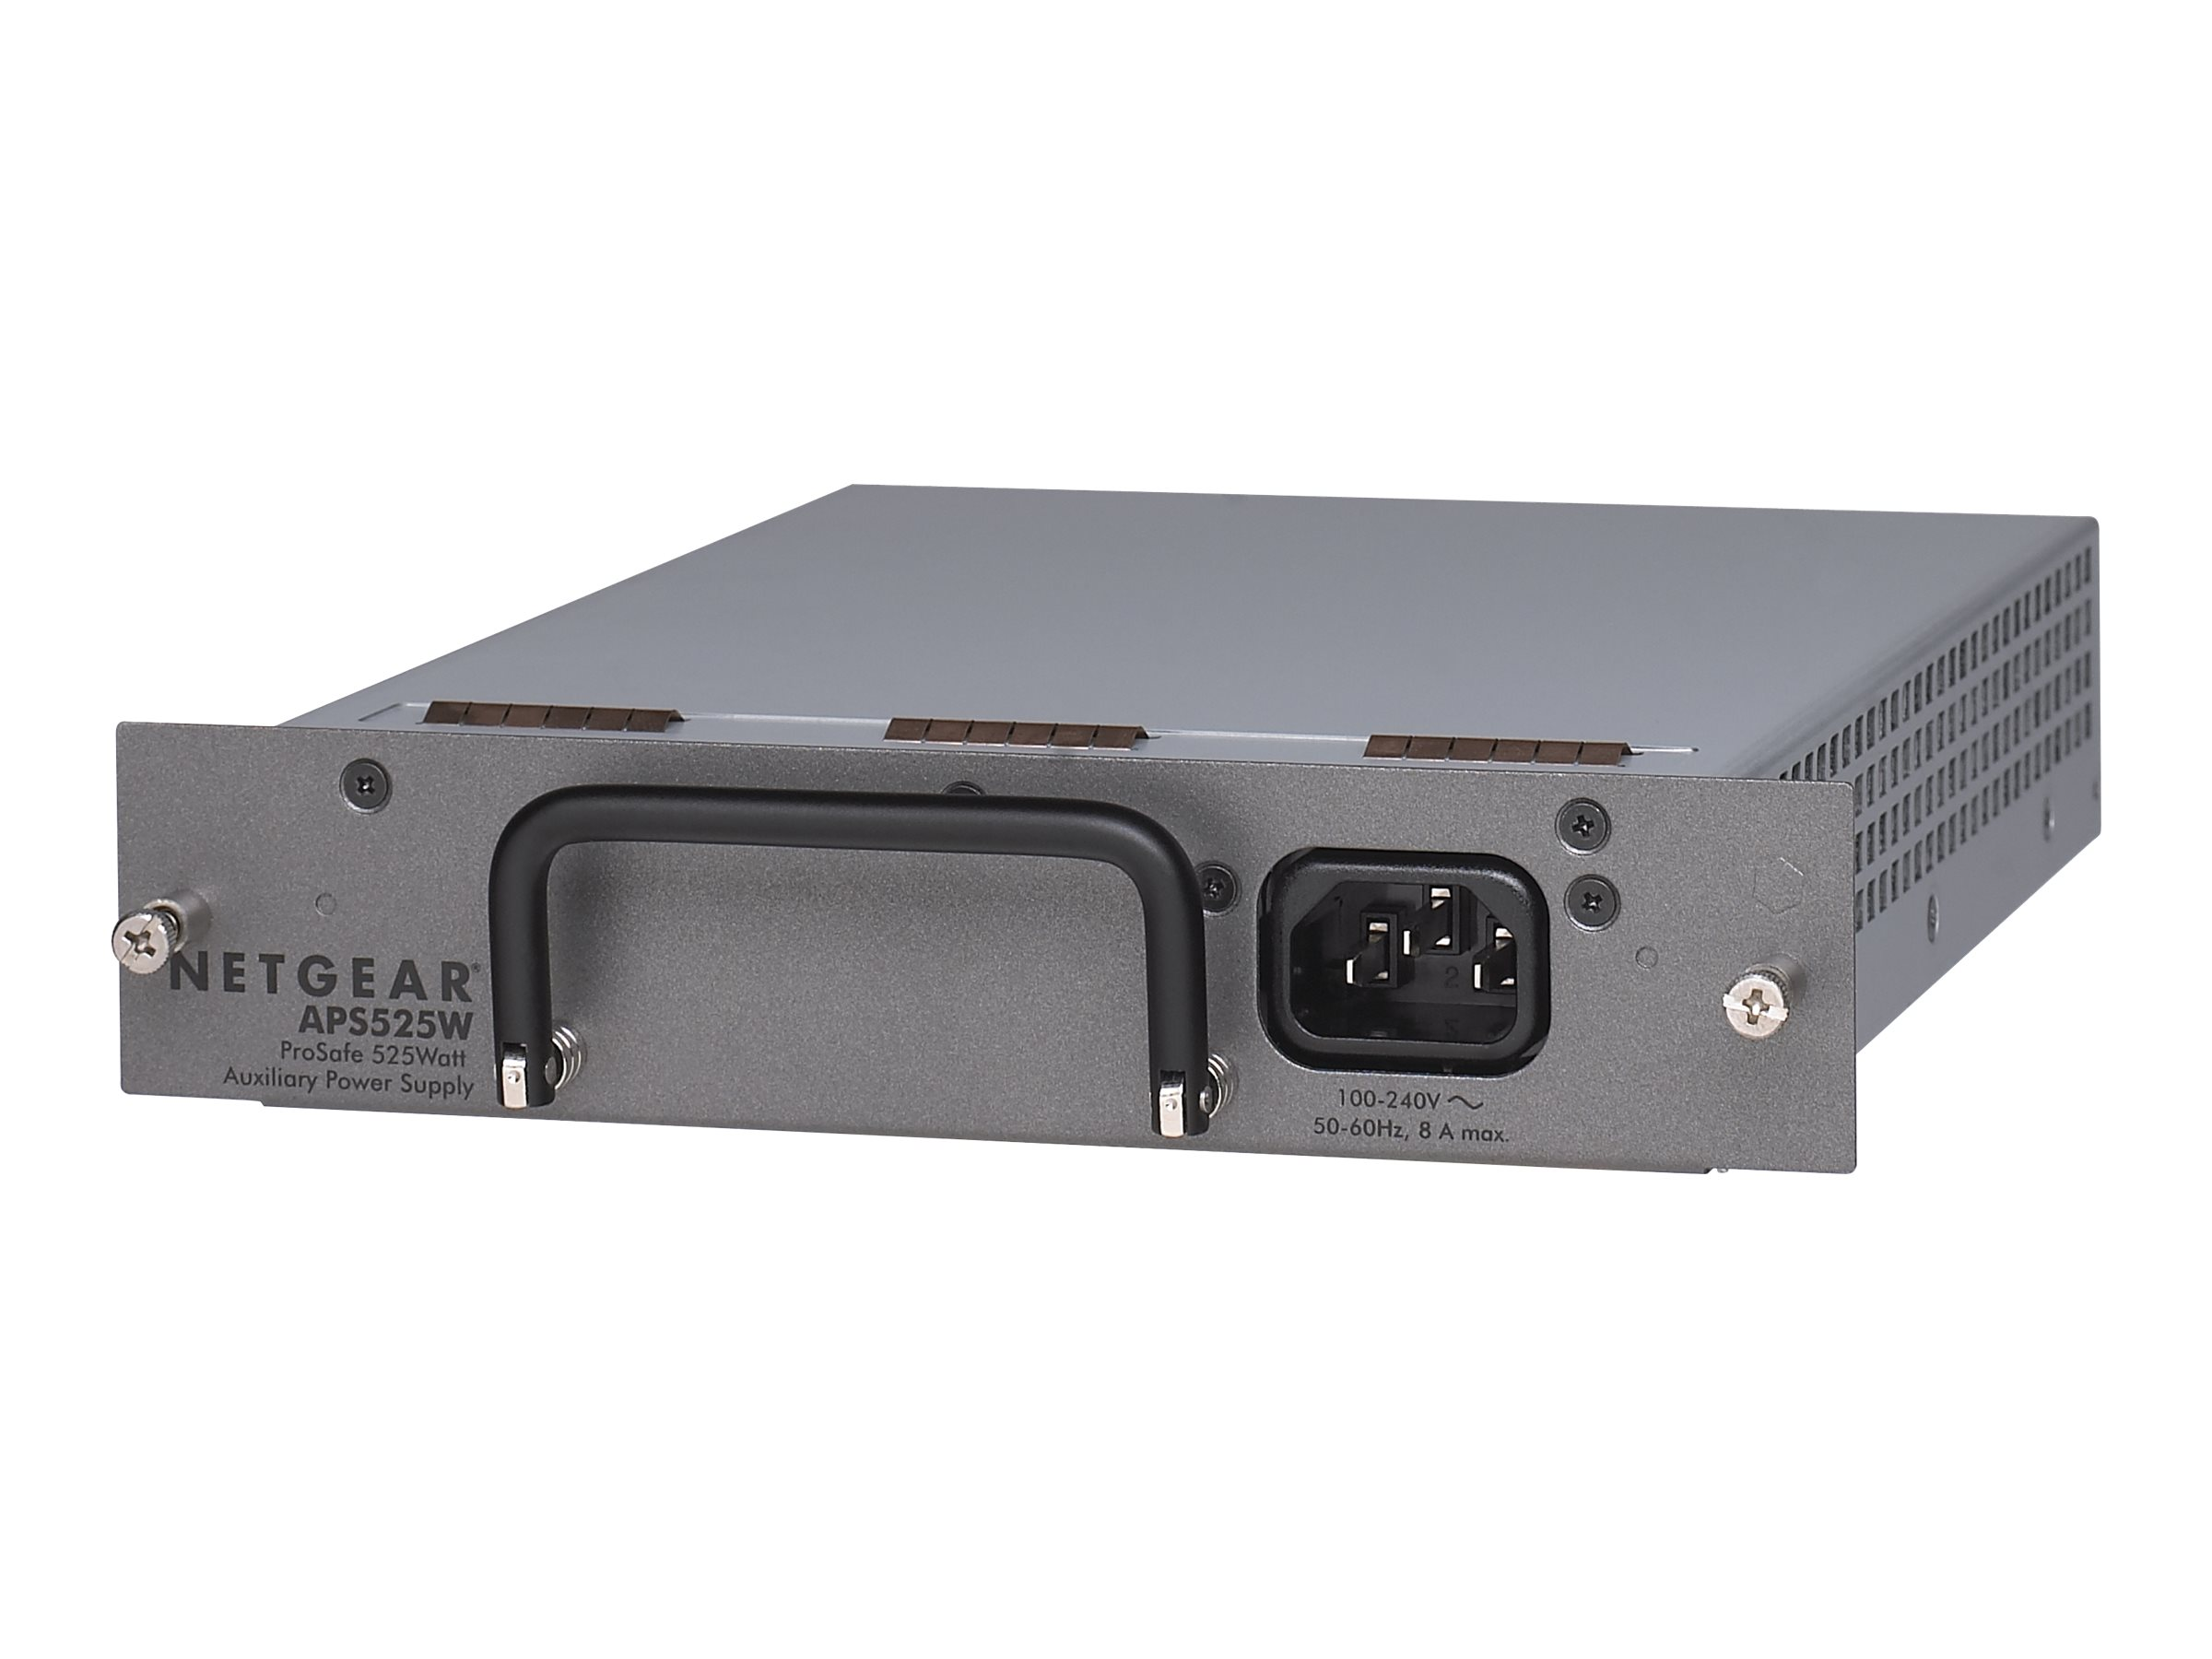 NETGEAR Prosafe APS300W Auxiliary Power Supply - Stromversorgung redundant / Hot-Plug (Plug-In-Modul) - 300 Watt - für ProSAFE XSM7224S